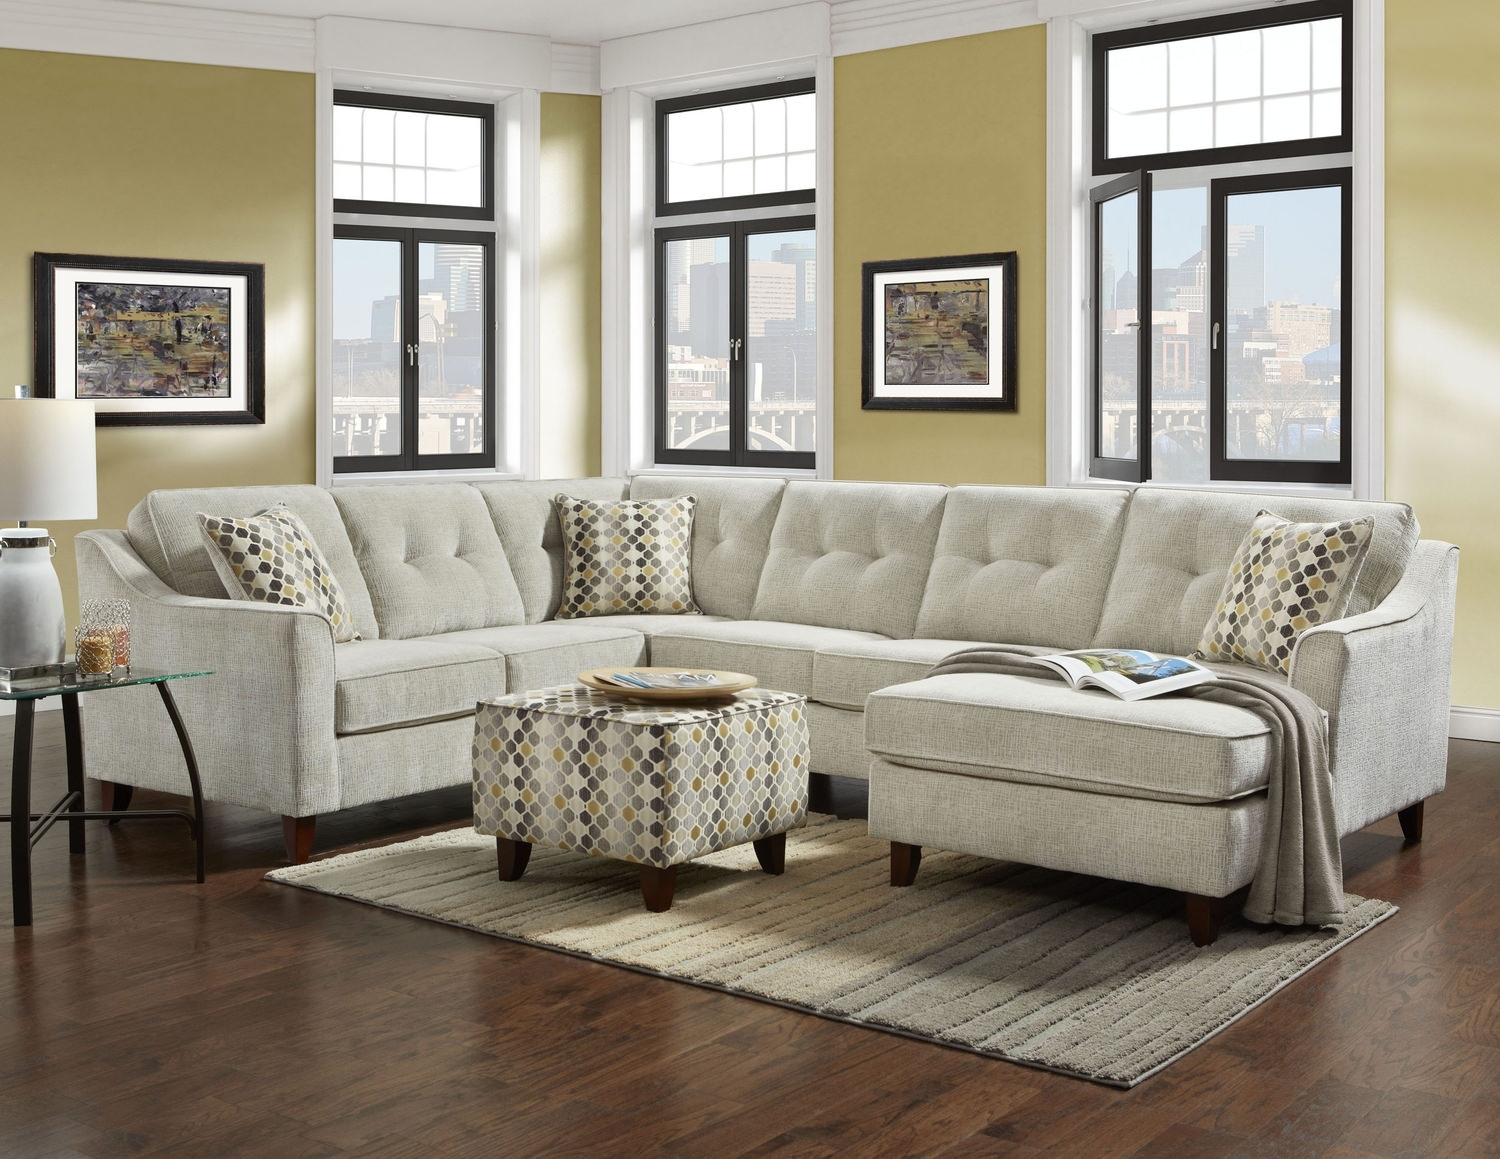 3 Piece Sectional | Gorbuhi For Adeline 3 Piece Sectionals (Photo 24 of 25)